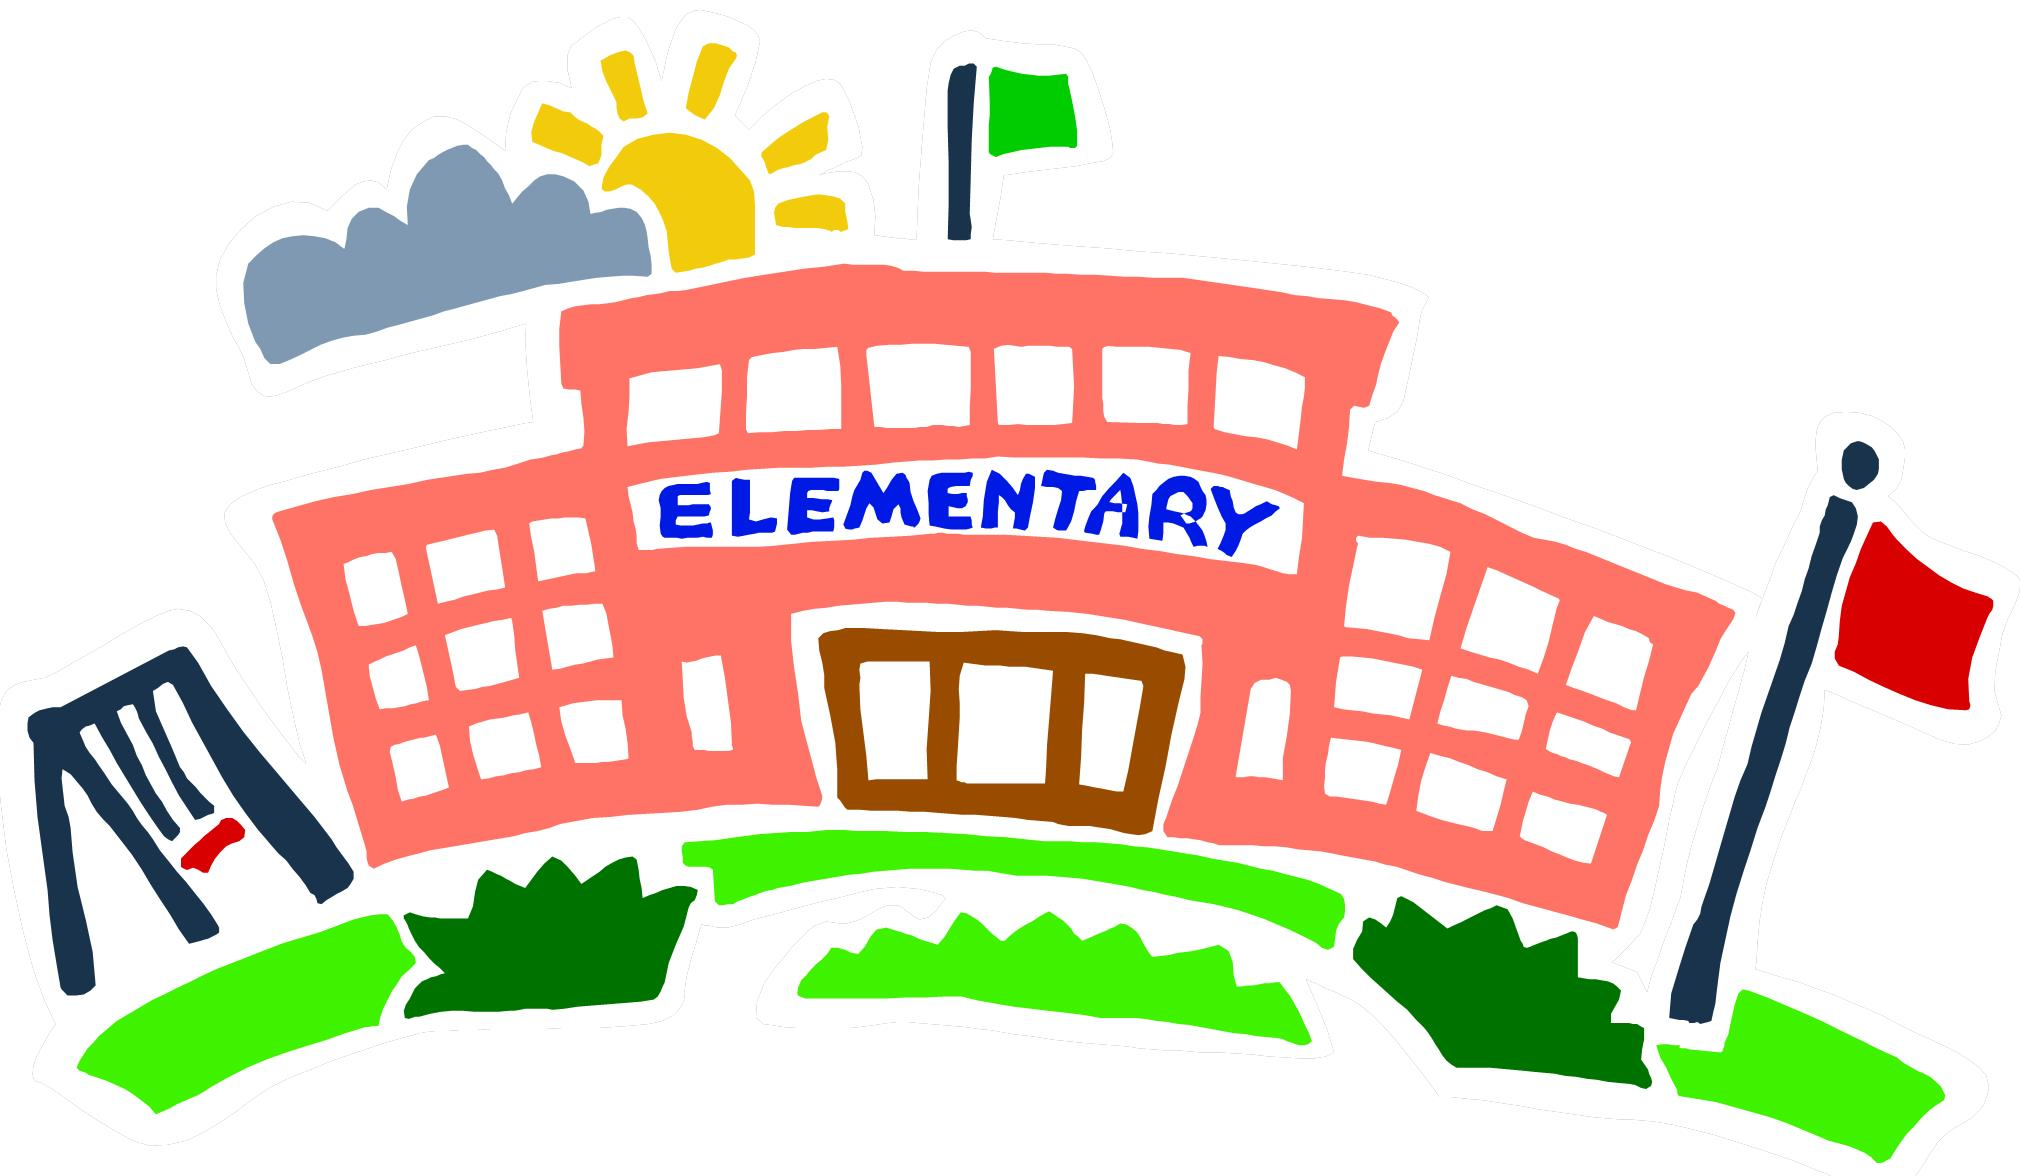 Free School Clip Art From - Vergilis Clipart; Elementary .